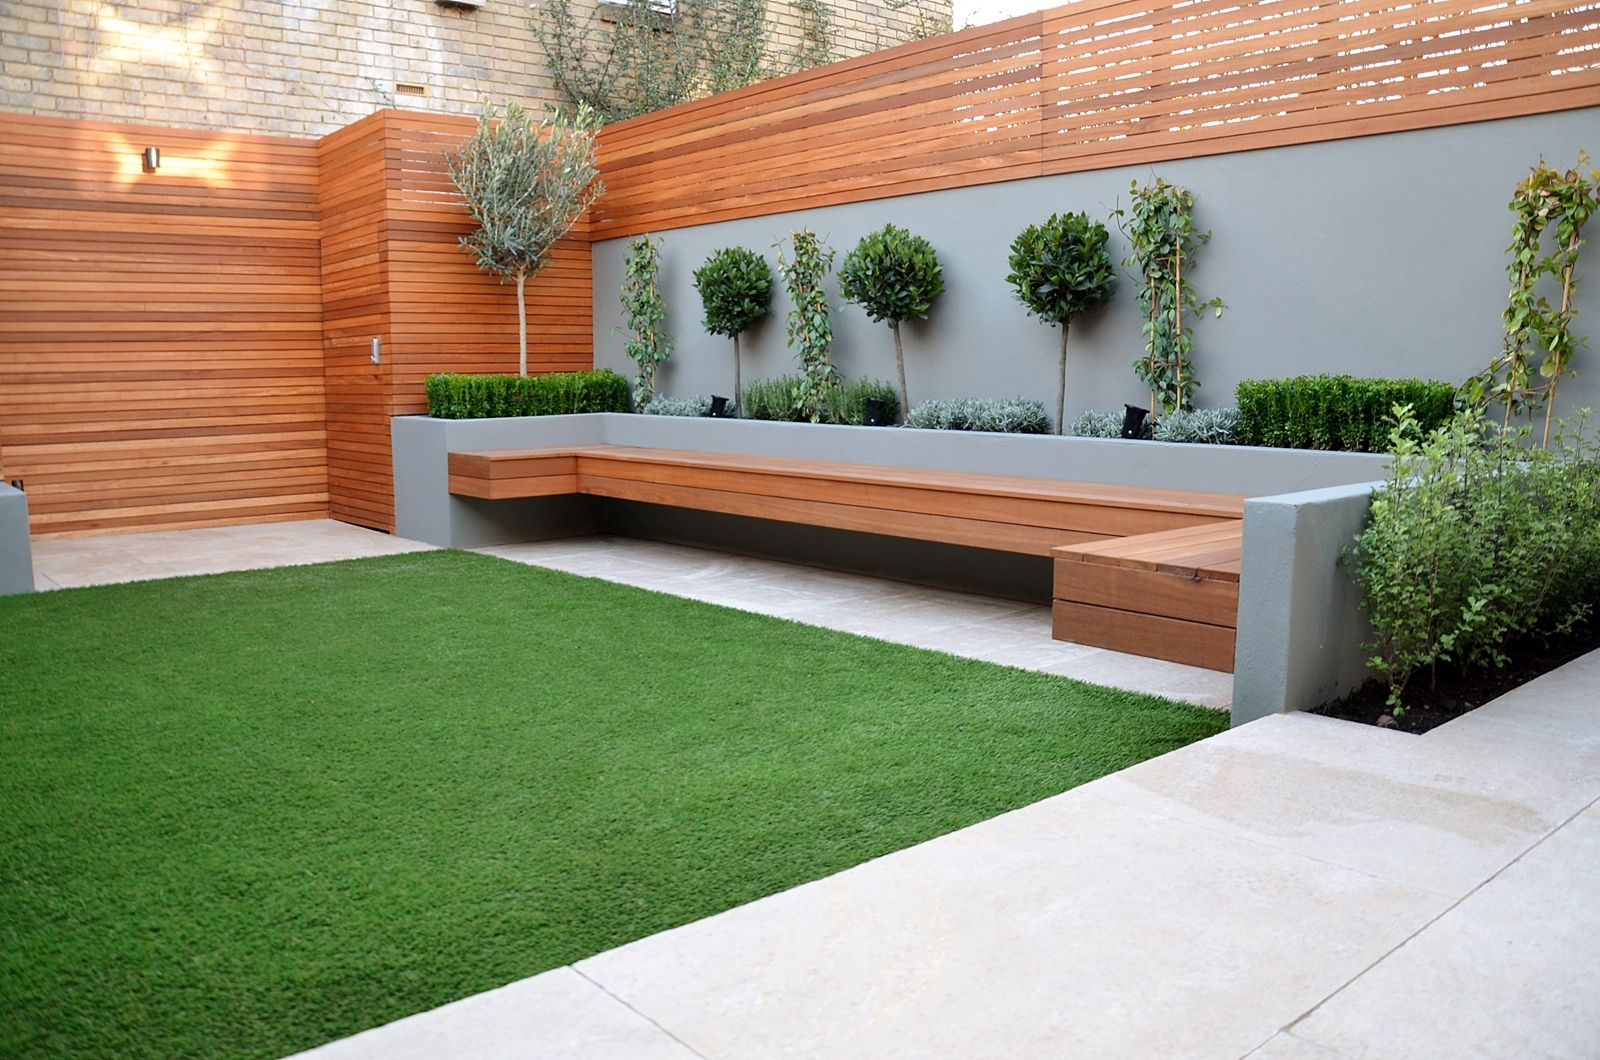 modern low maintenance garden design clapham london designed by anewgarden - Garden Design Low Maintenance